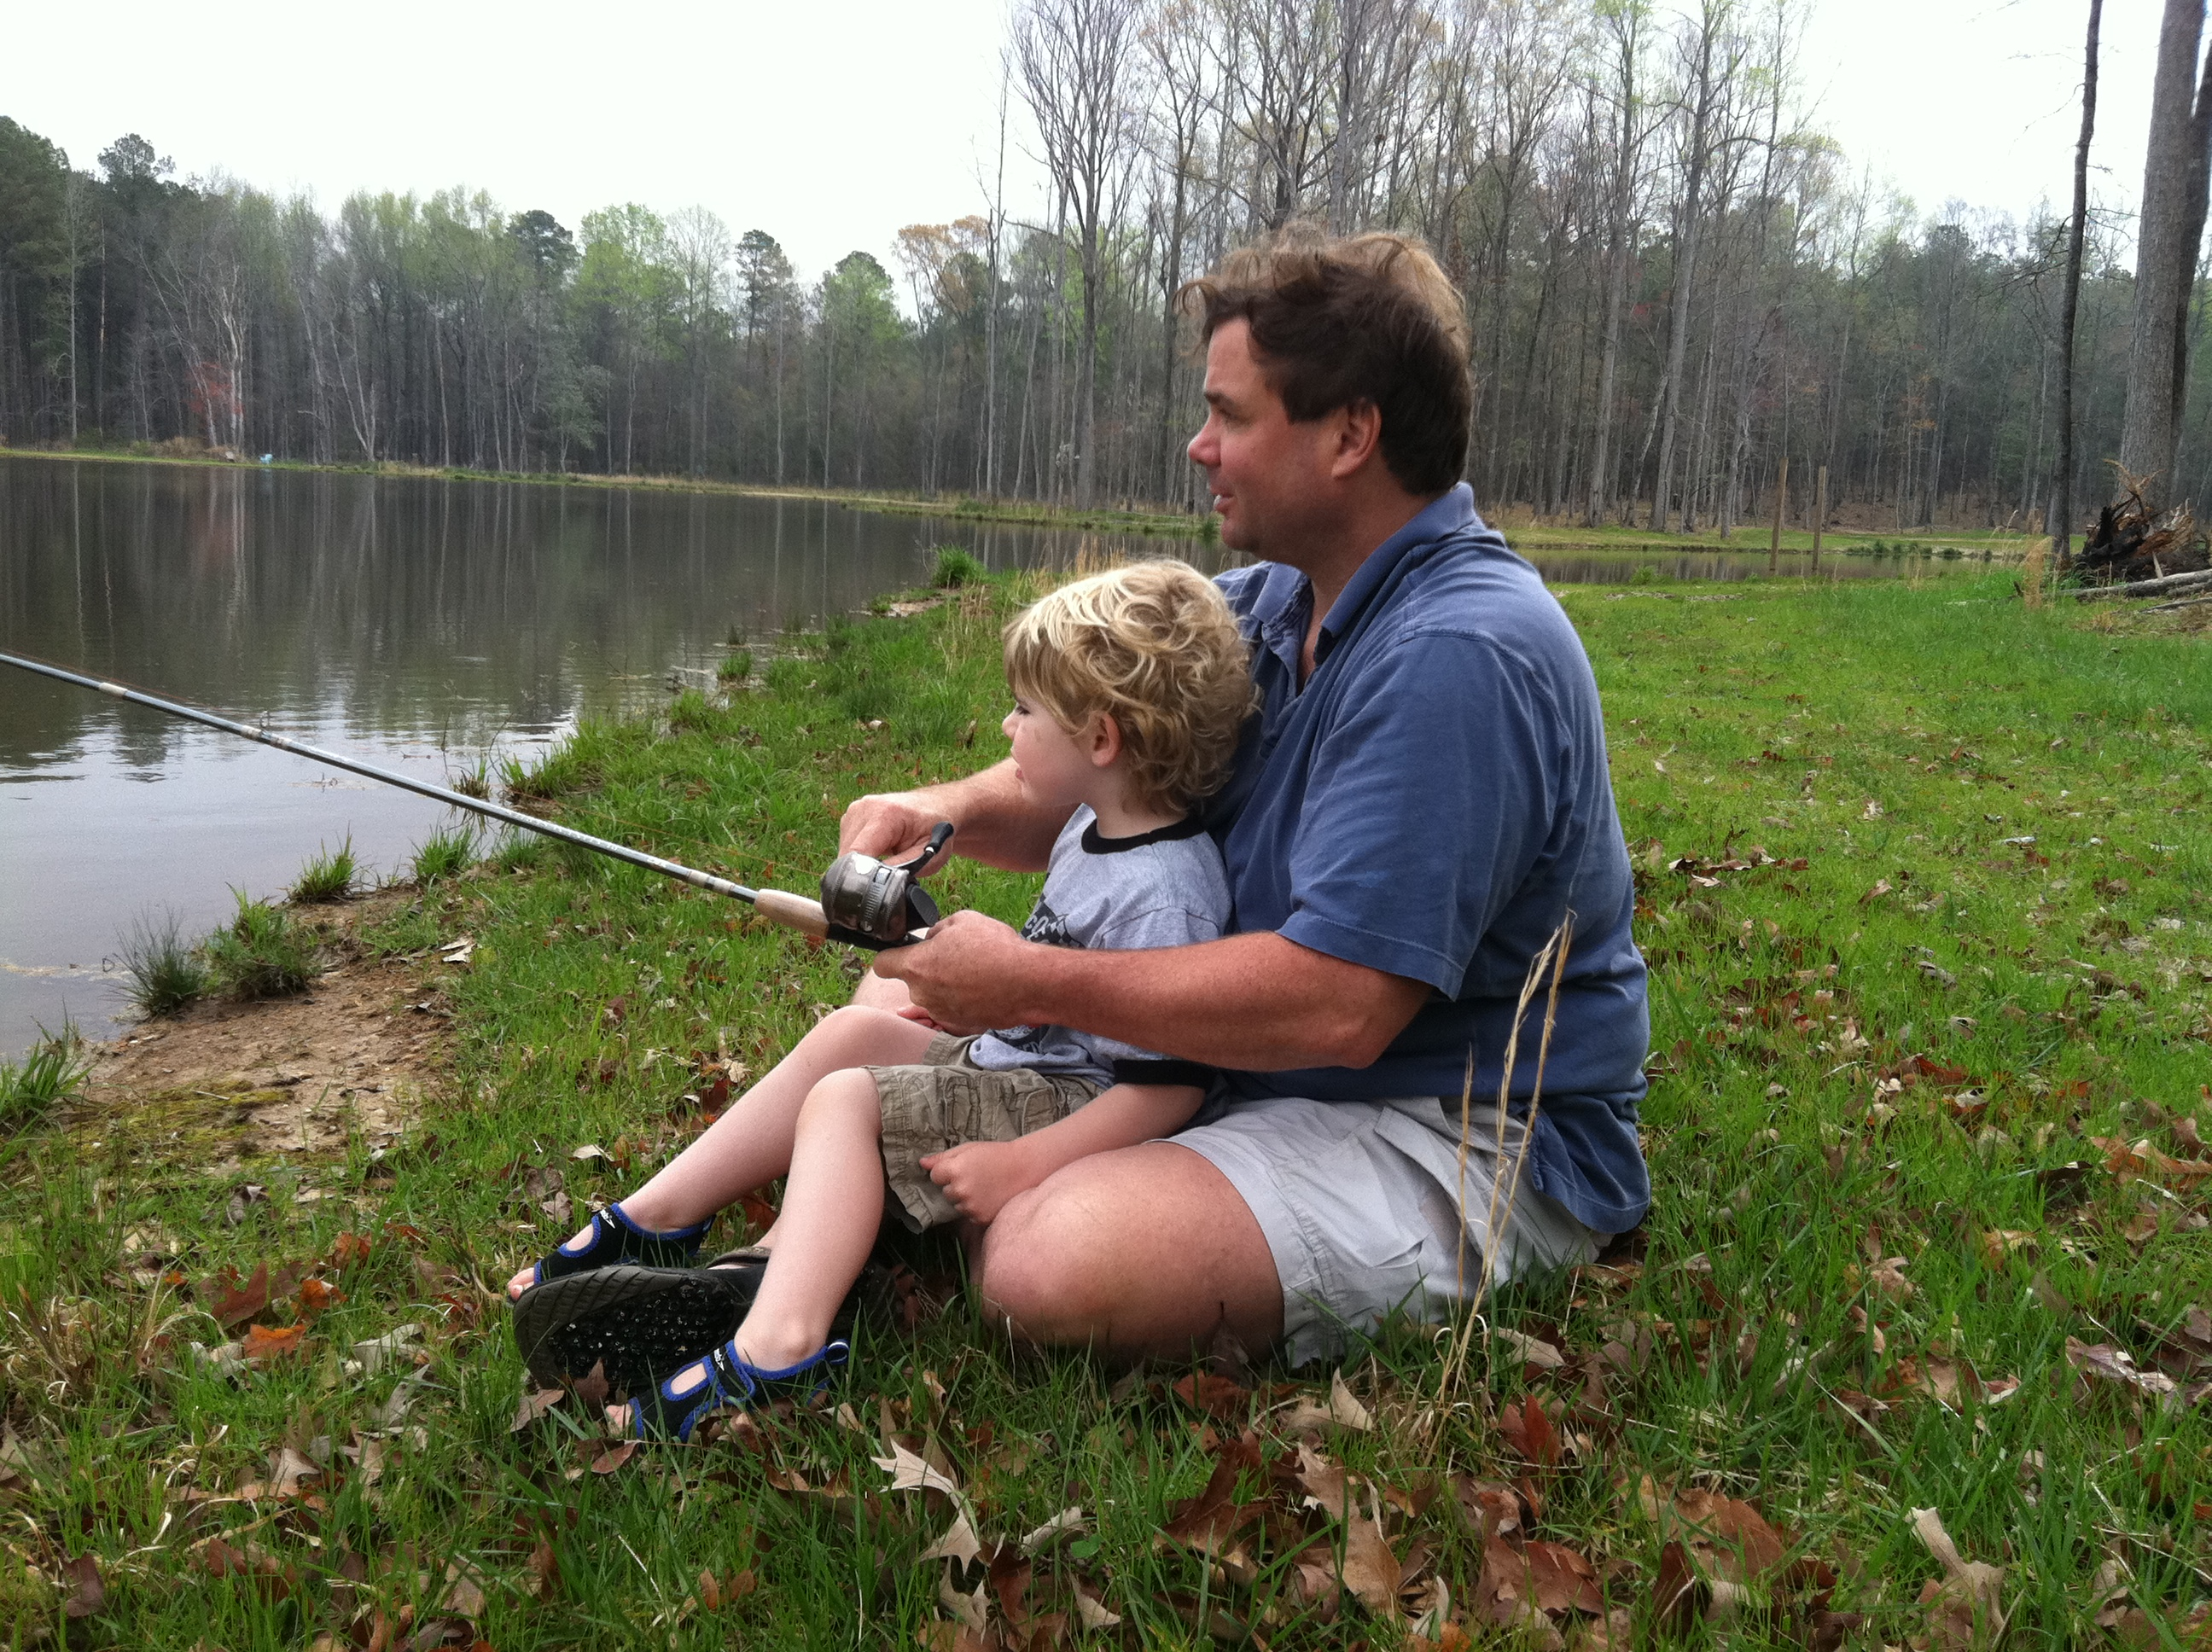 Ribolov na fotkama - Page 3 Fishing-with-dad